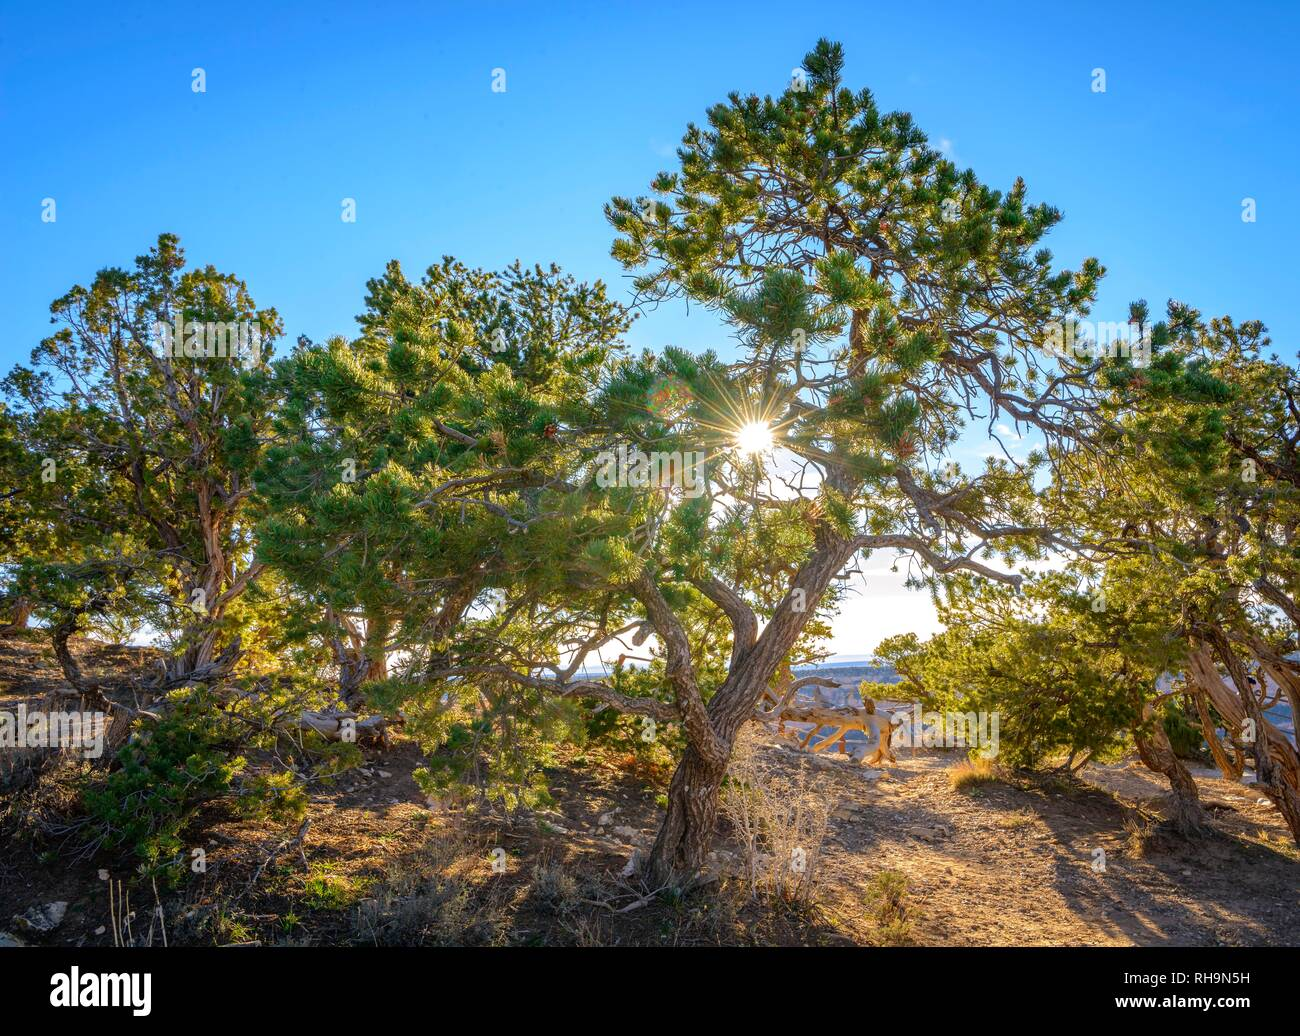 Solar star, Sun shines through the needles of a Pinyon-Pine, Piñon Pines or Pinyon Pines (Pinus) at the edge of the Grand - Stock Image